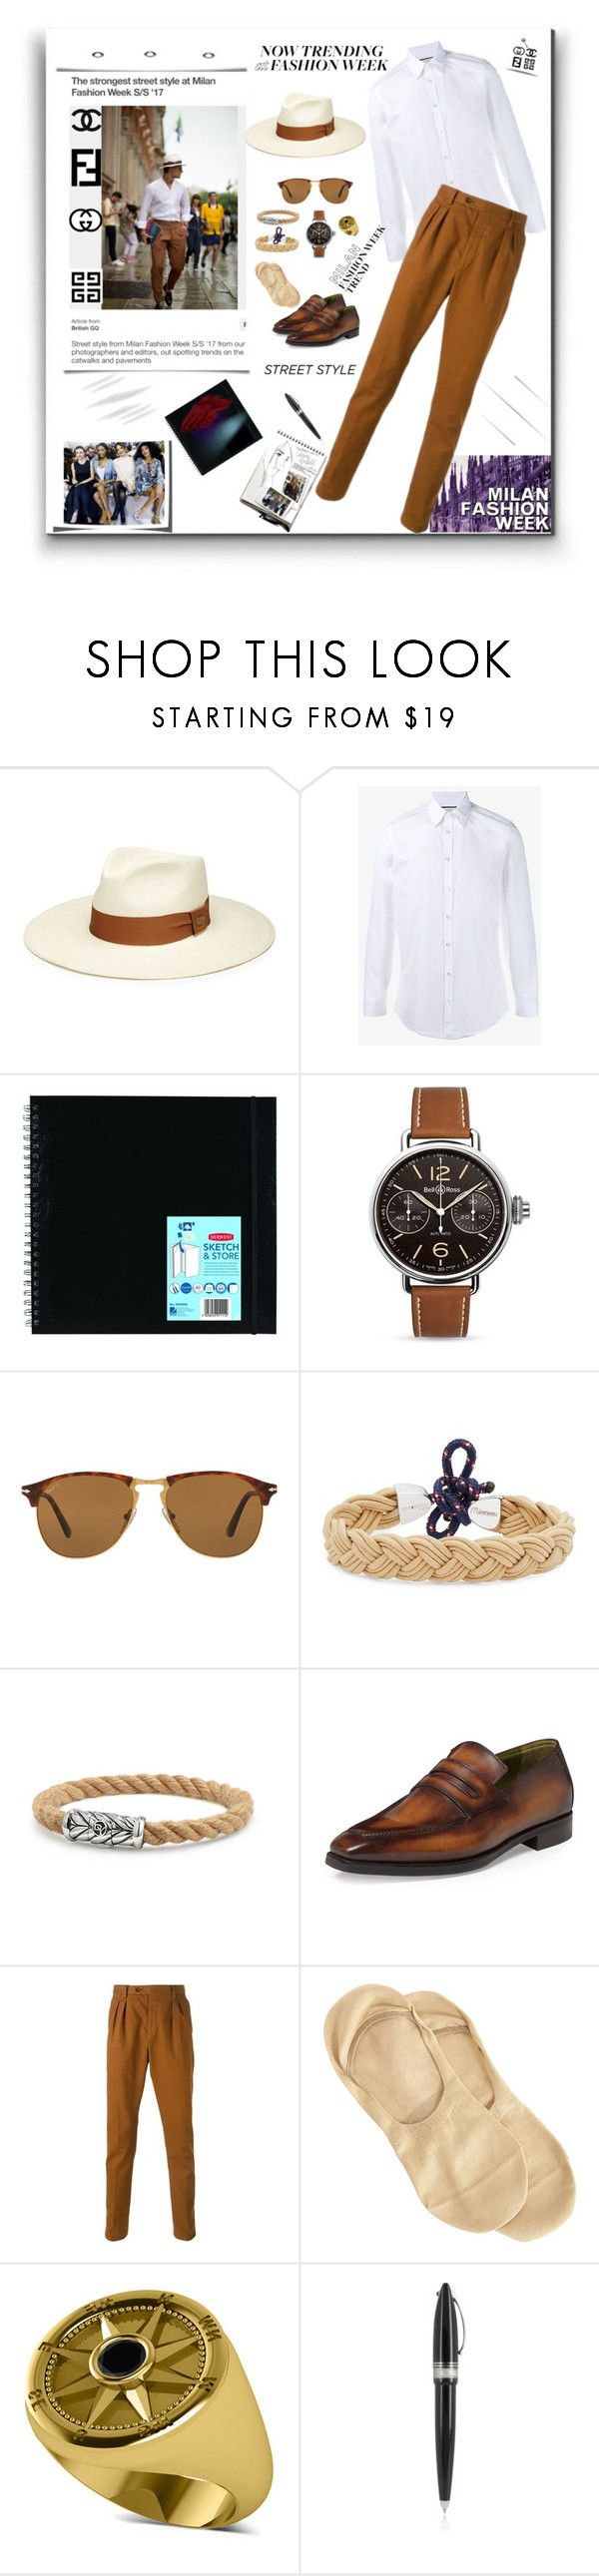 """Men's Fashion week"" by deborah-518 ❤ liked on Polyvore featuring Barbisio, Gucci, Bell & Ross, Persol, MIANSAI, David Yurman, Berluti, Al Duca d'Aosta, Garance Doré and Barneys New York"